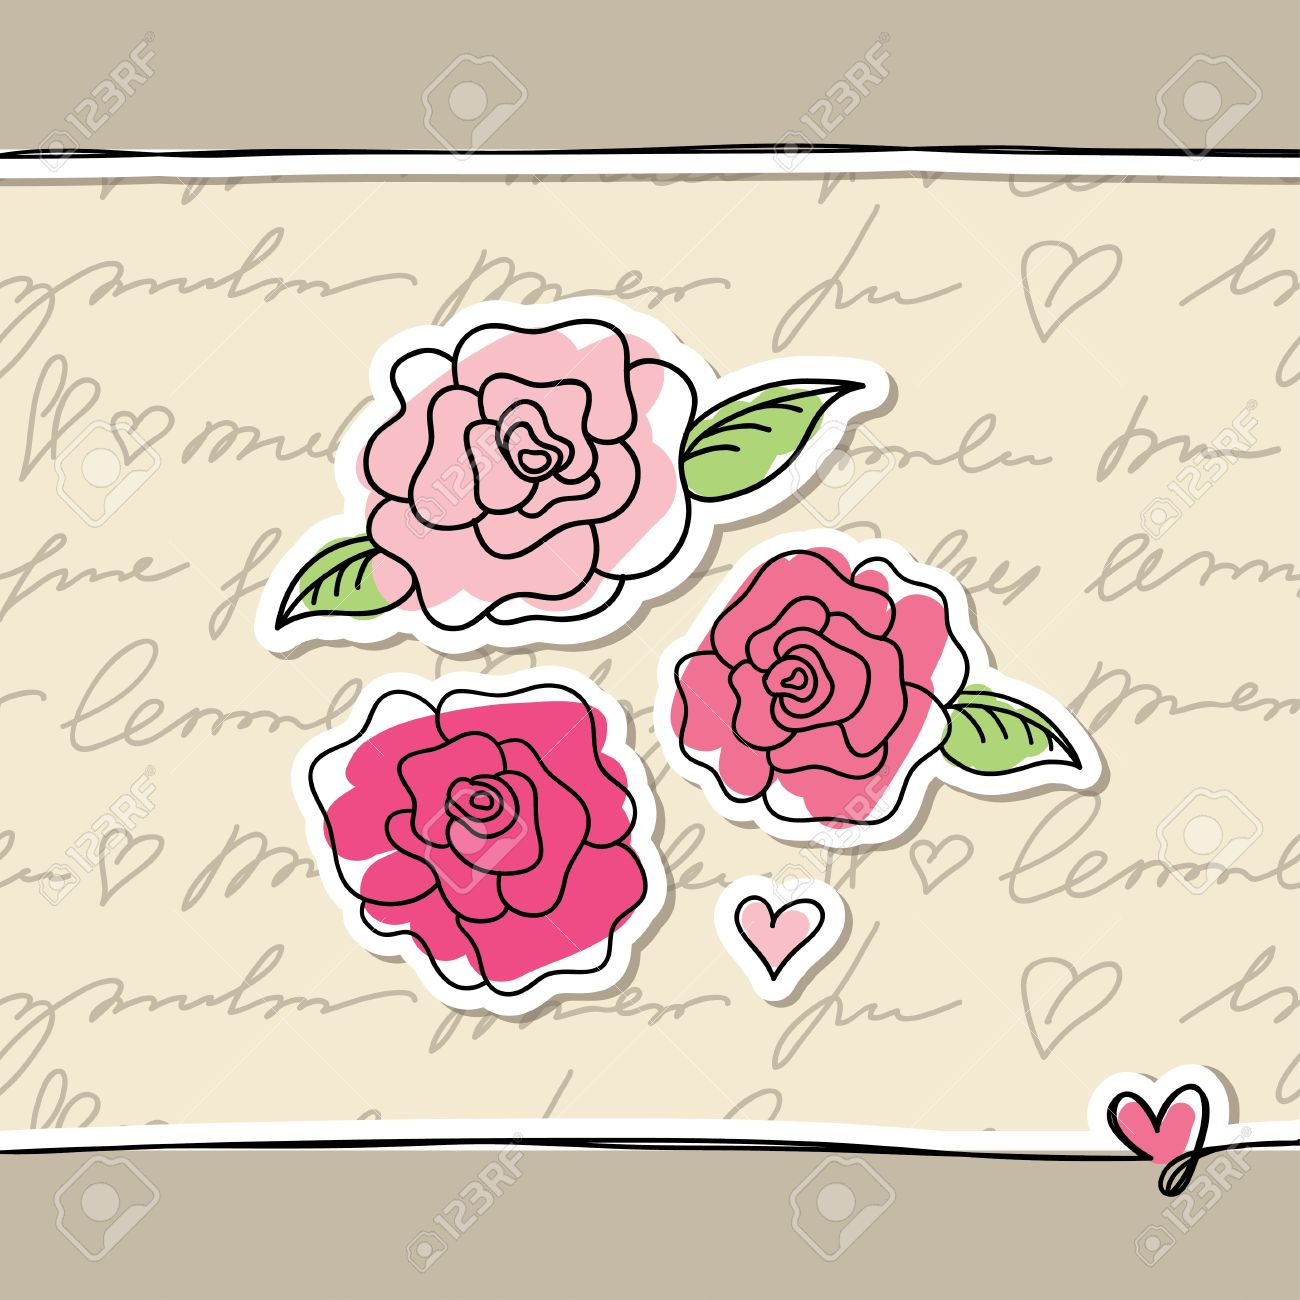 illustration with pink hand drawn roses on paper Stock Vector - 15012736